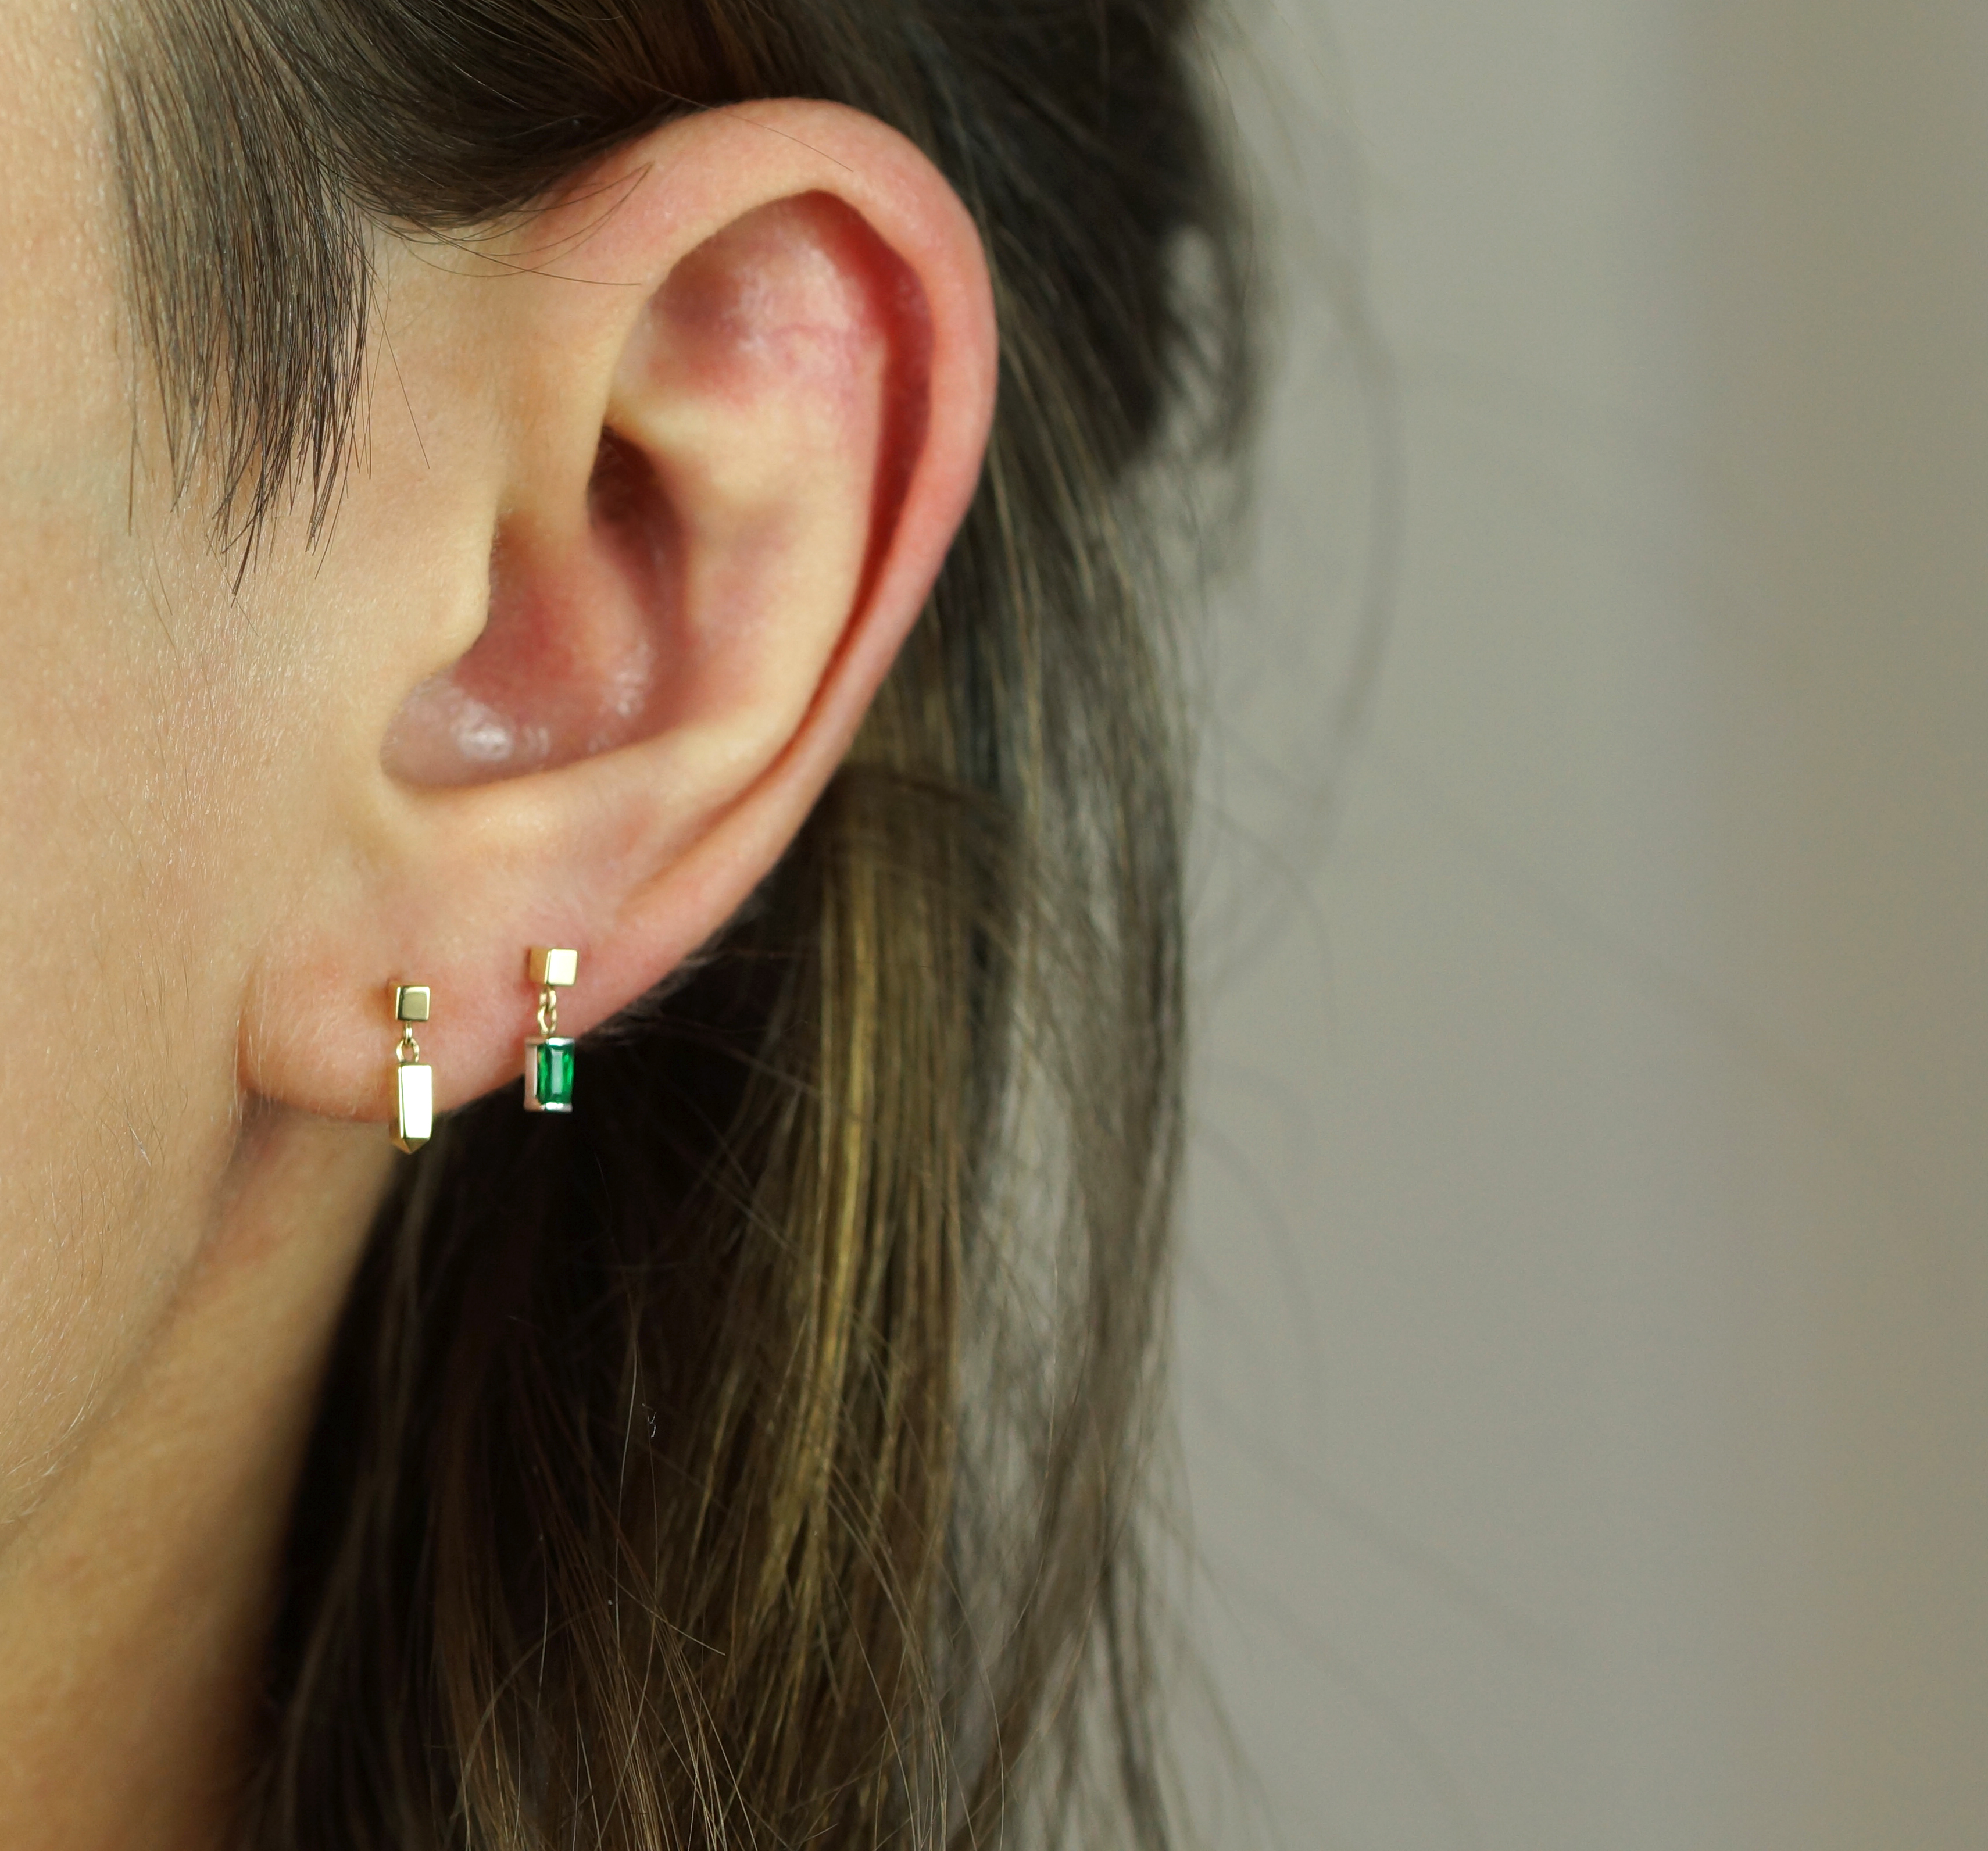 Ear Styling with Piercing Jewellery by Lena Cohen